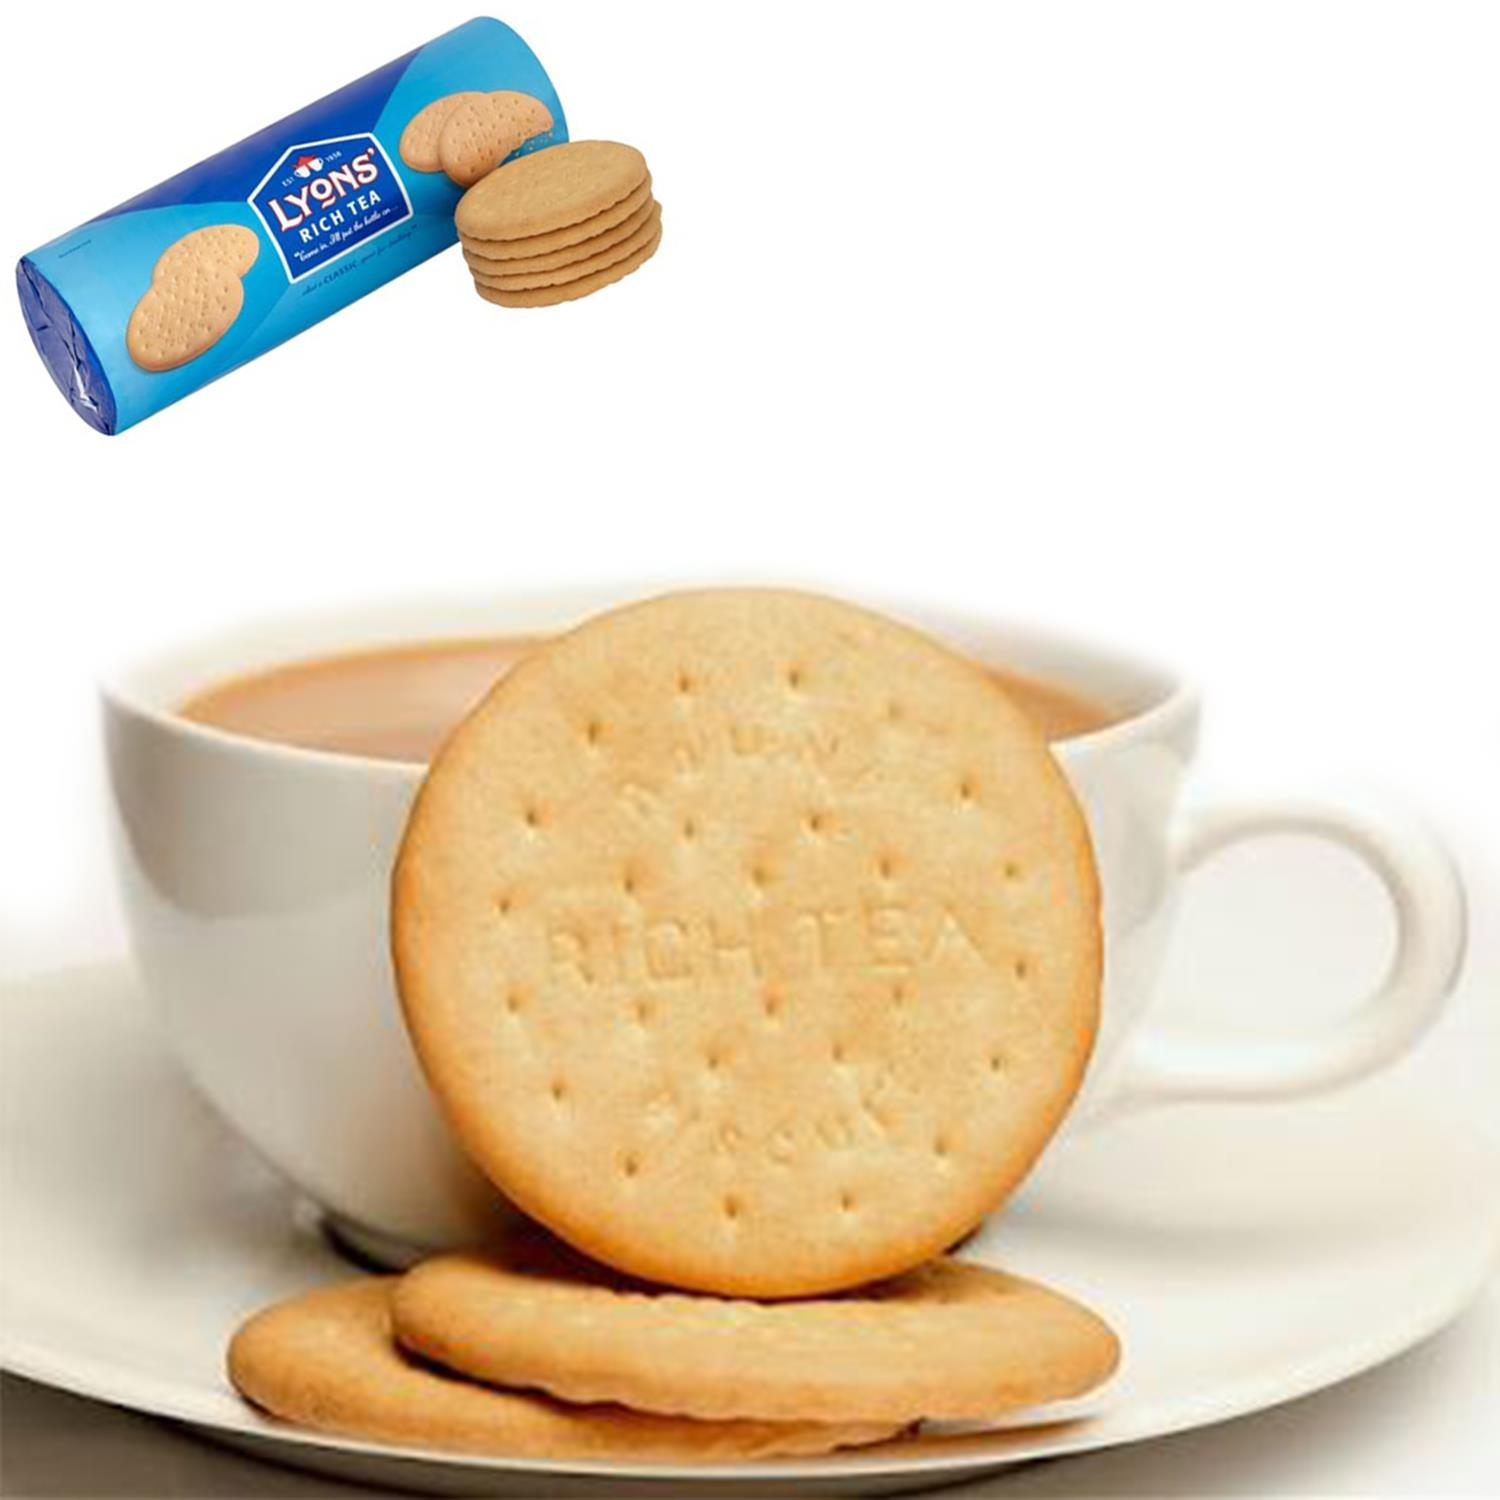 thumbnail 9 - Lyons Rich Tea Biscuits 300g, Great for a morning or afternoon snack